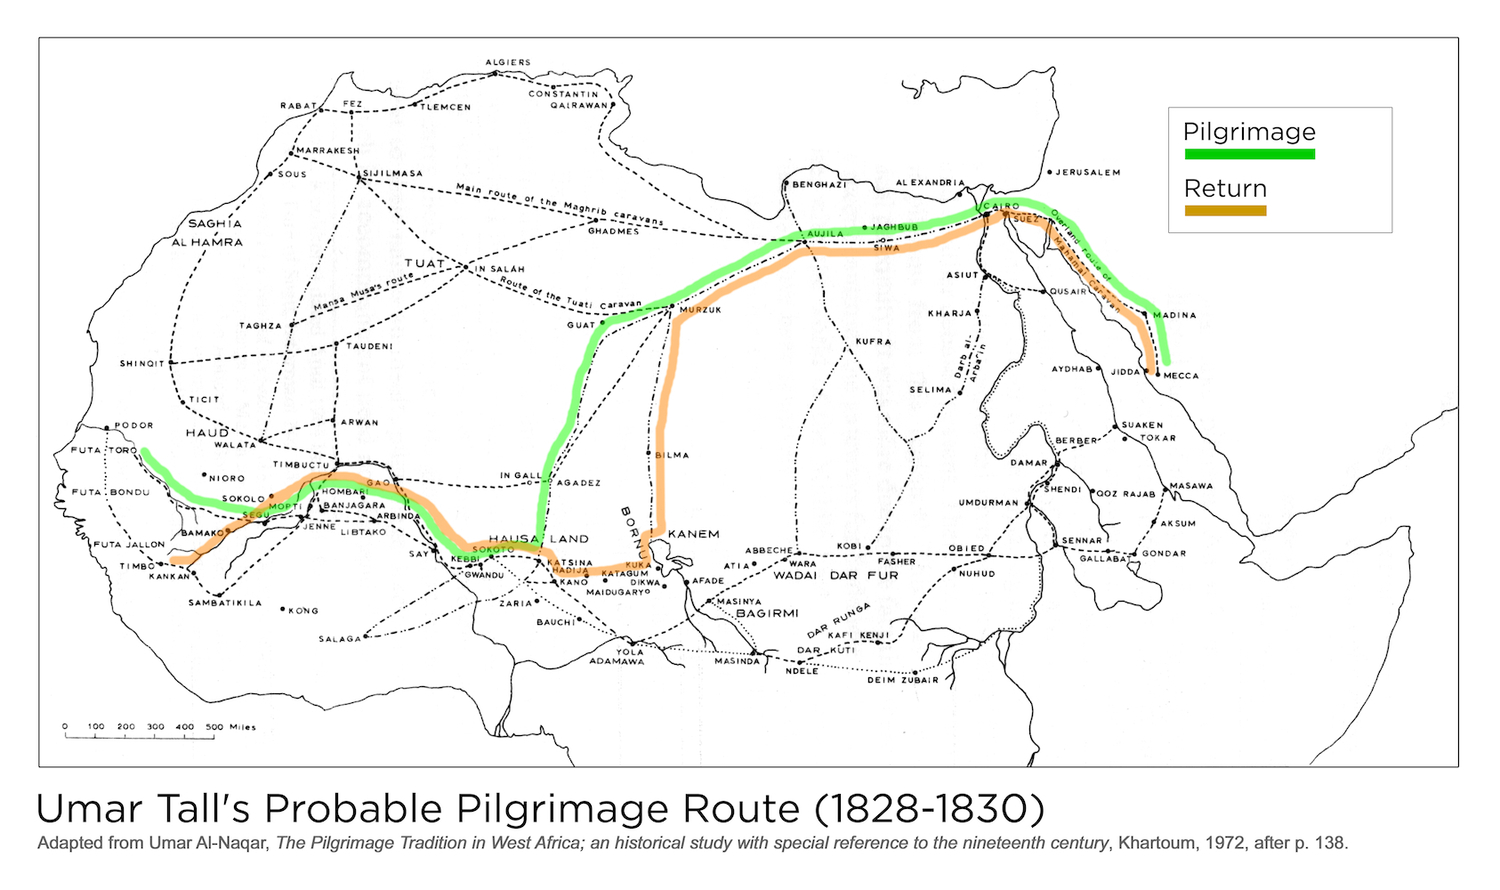 Umar Tall's Probable Pilgrimage Route (1828-1830)